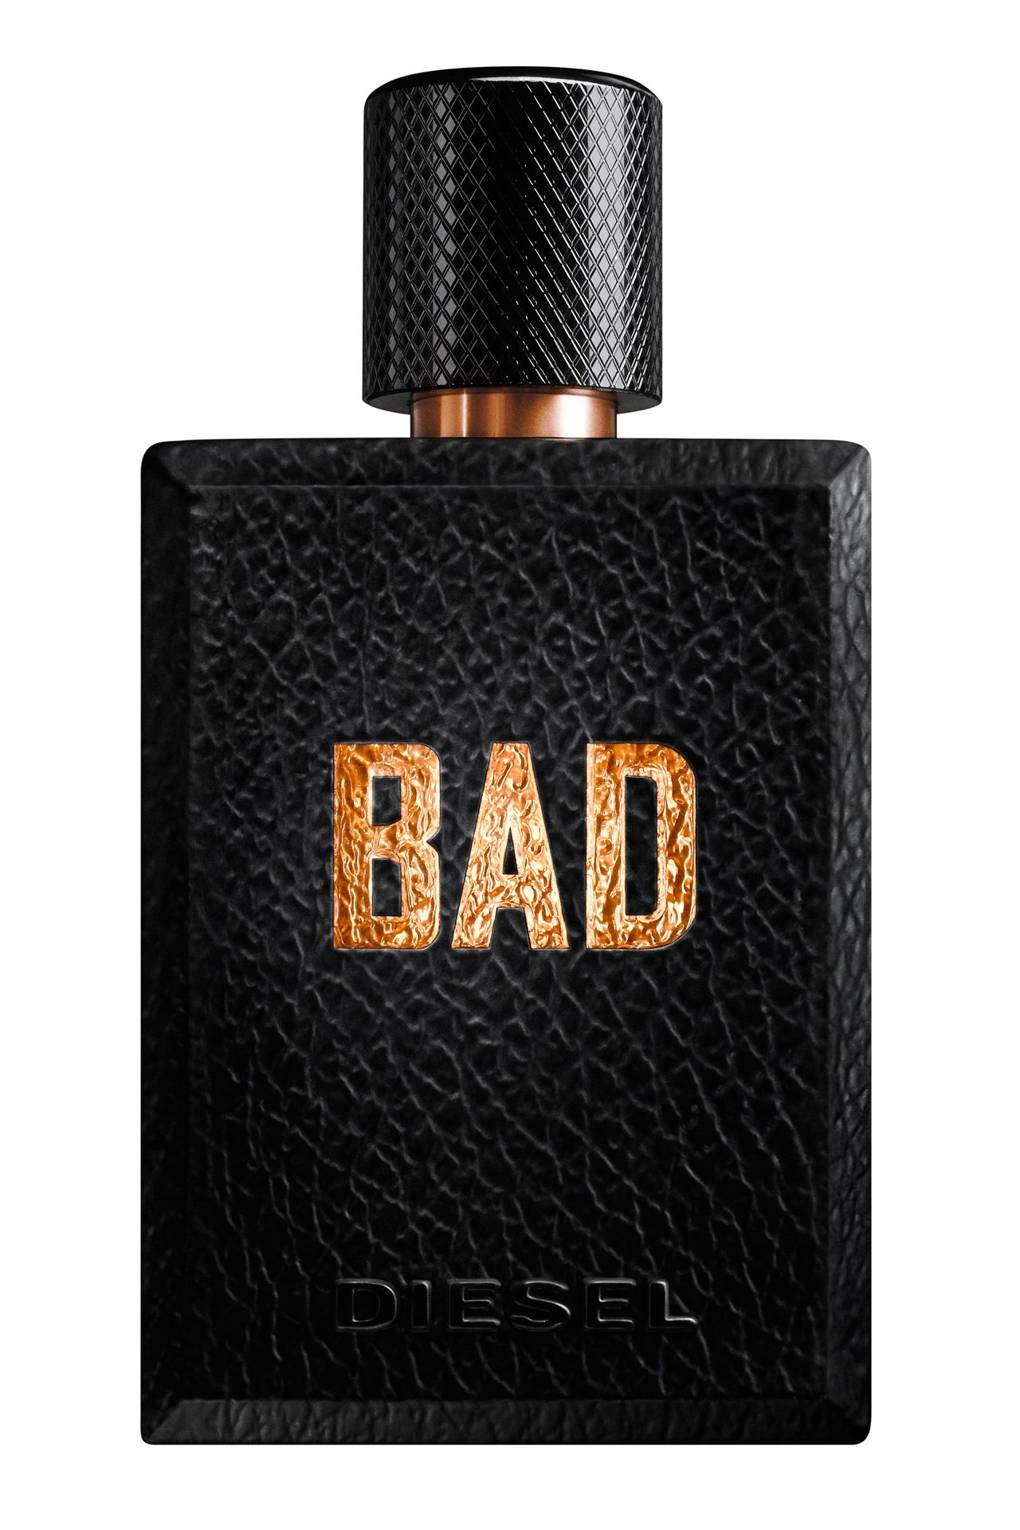 3f0fd0c0639a Top 10 Most Seductive Best Men Perfumes of all Time - List of Hot Selling  Brands